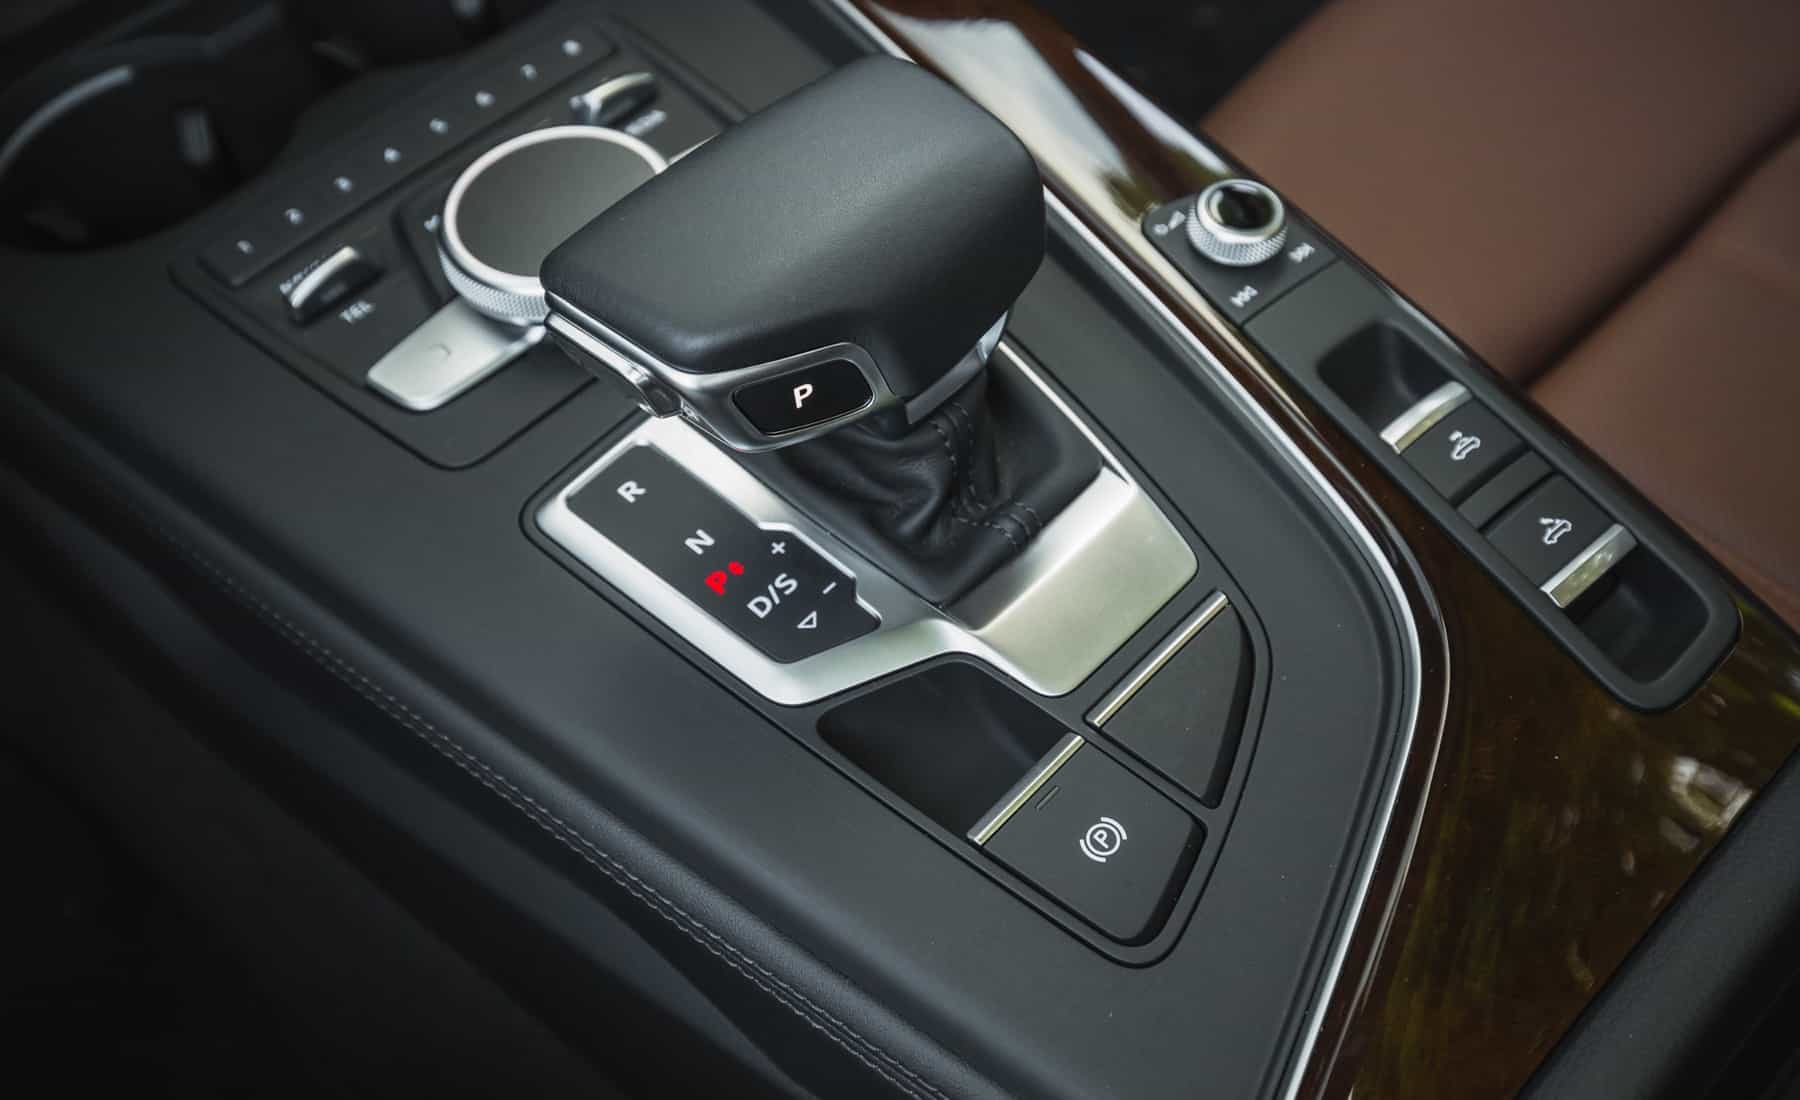 2018 Audi A5 Cabriolet Interior View Gear Shift Knob (Photo 31 of 45)